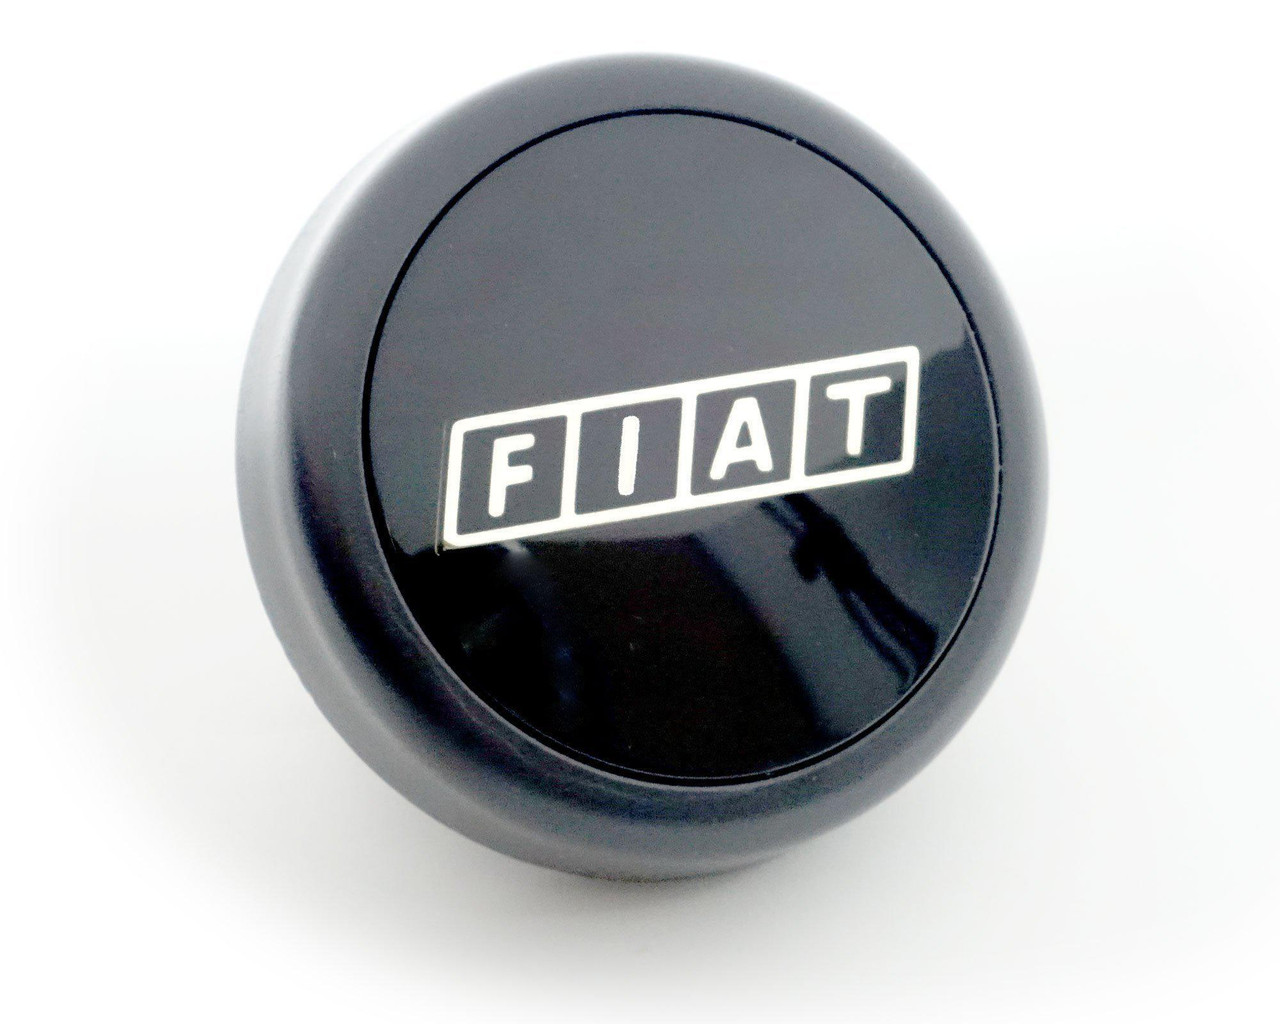 Alloy Wheel Center Cap - FIAT on Black